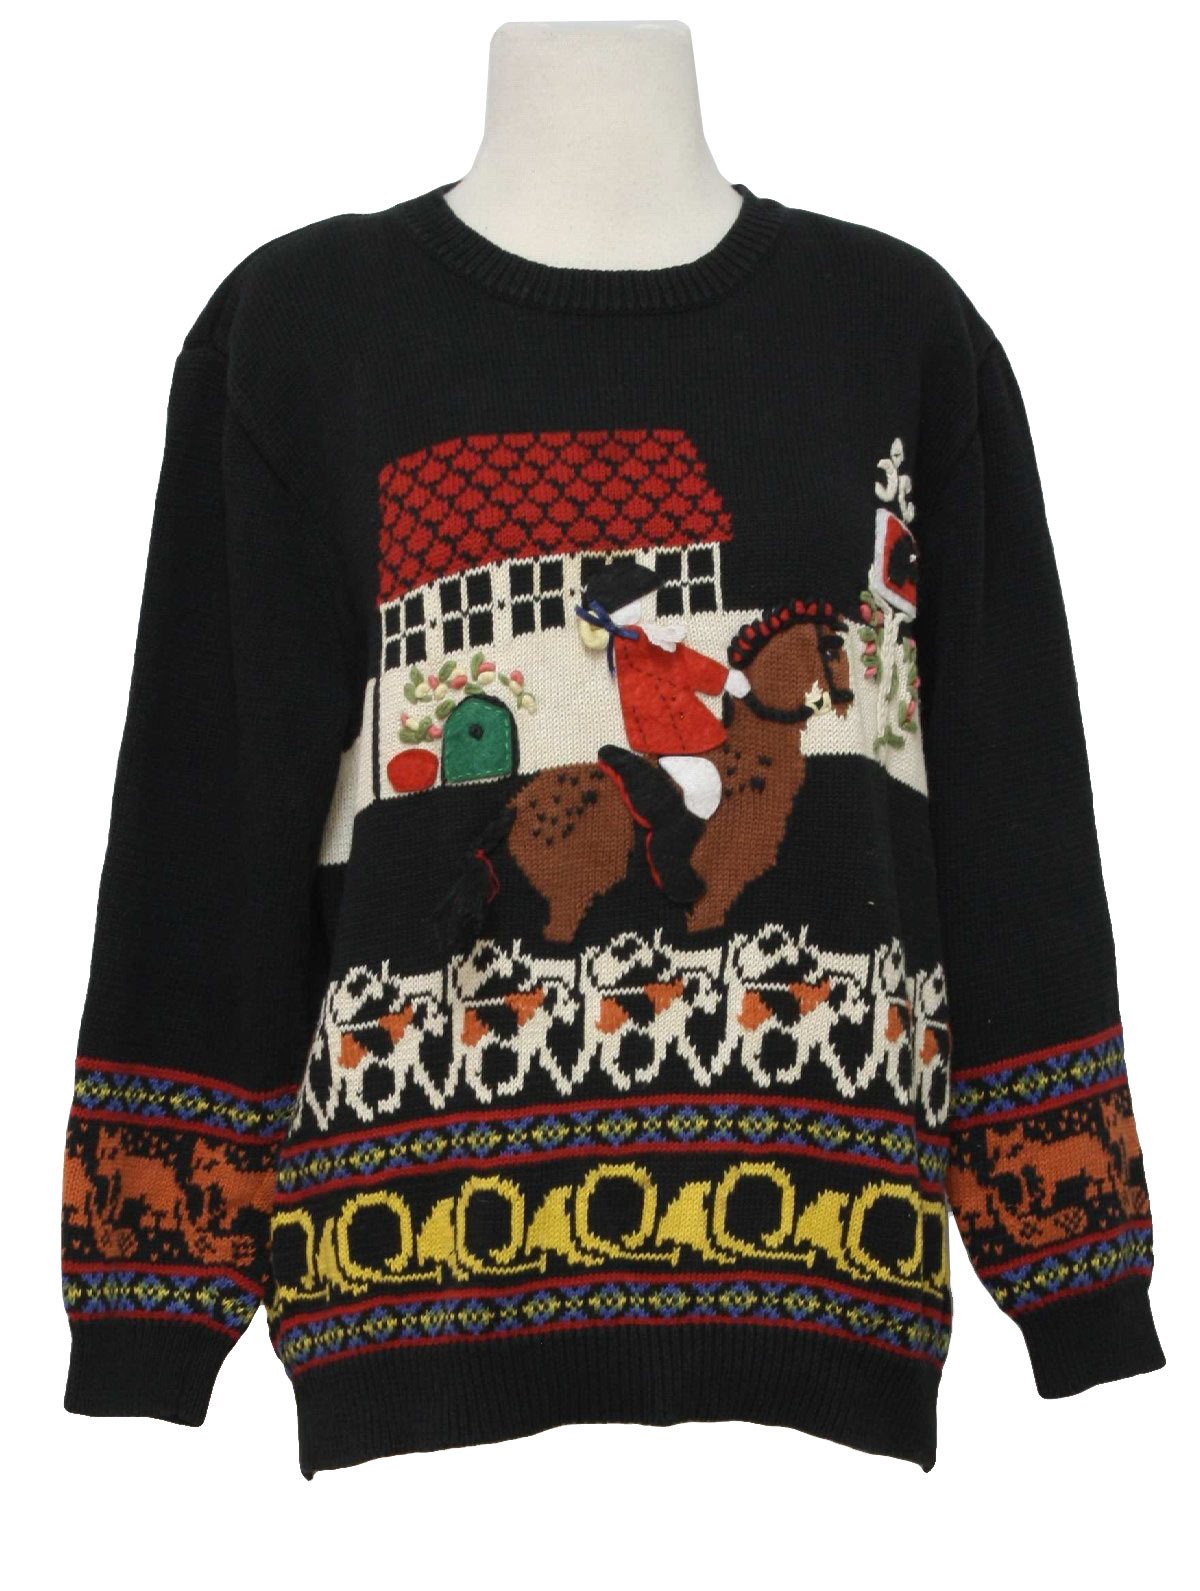 Black and Orange Ugly Sweater